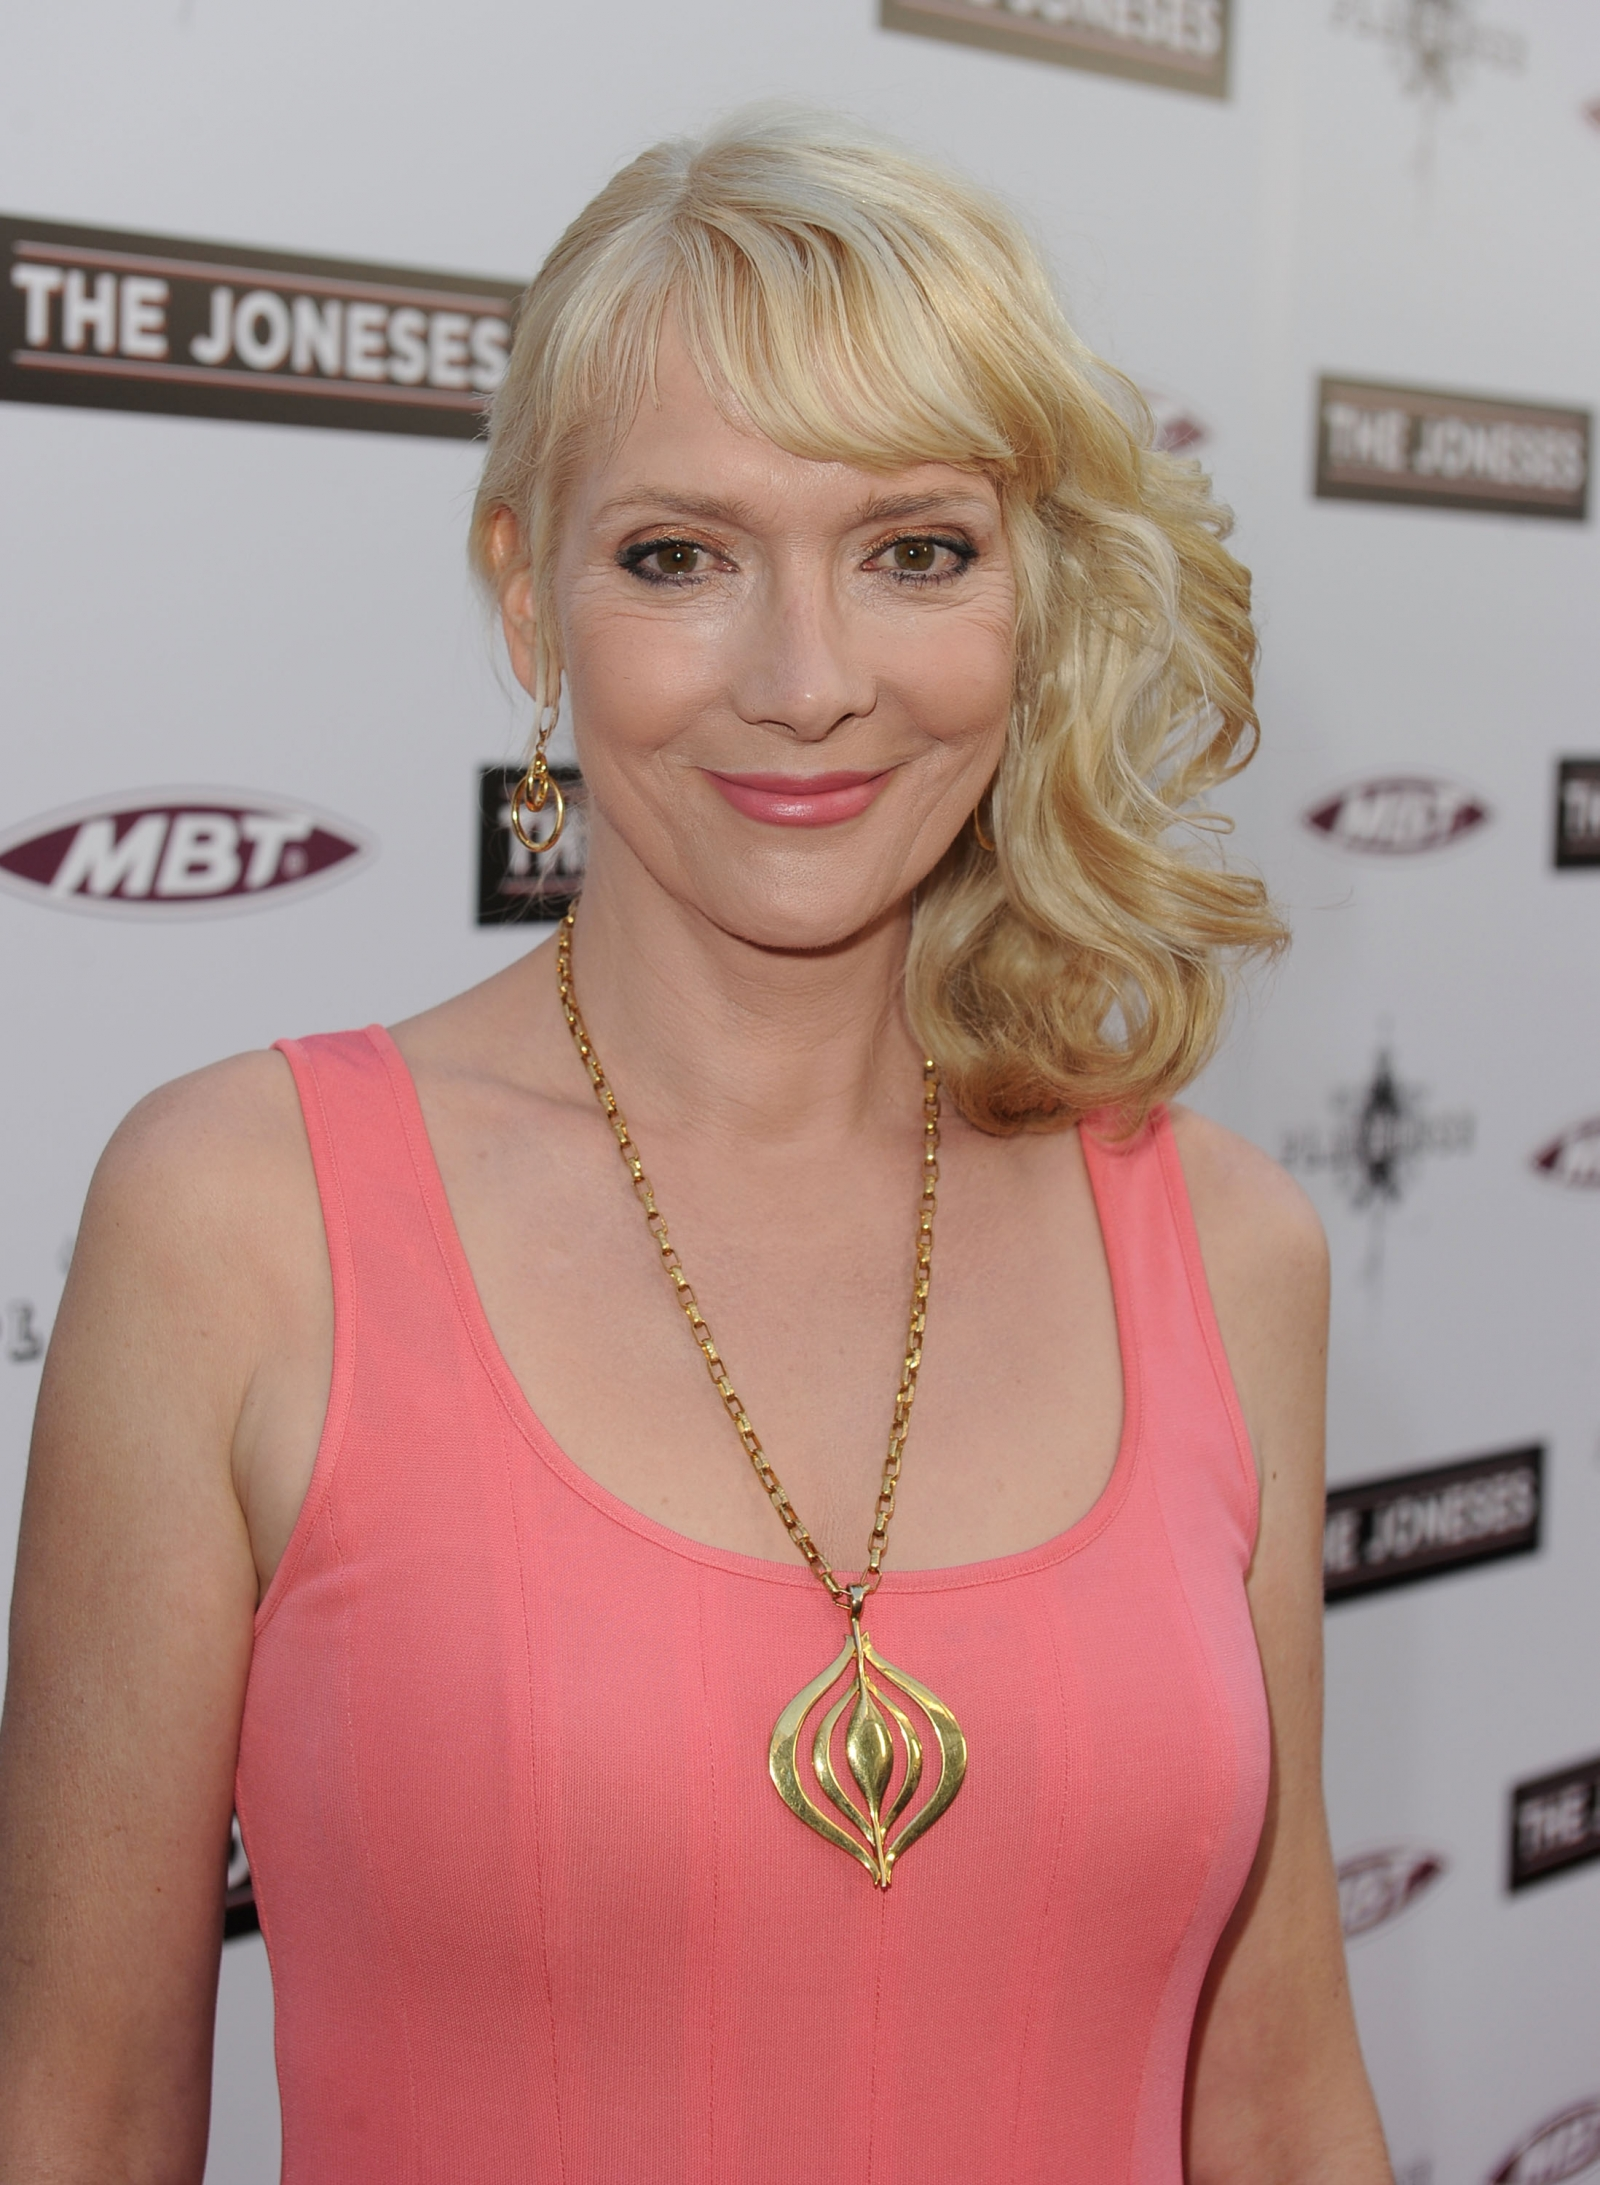 Glenne Headly, Dirty Rotten Scoundrels actress dies at 62